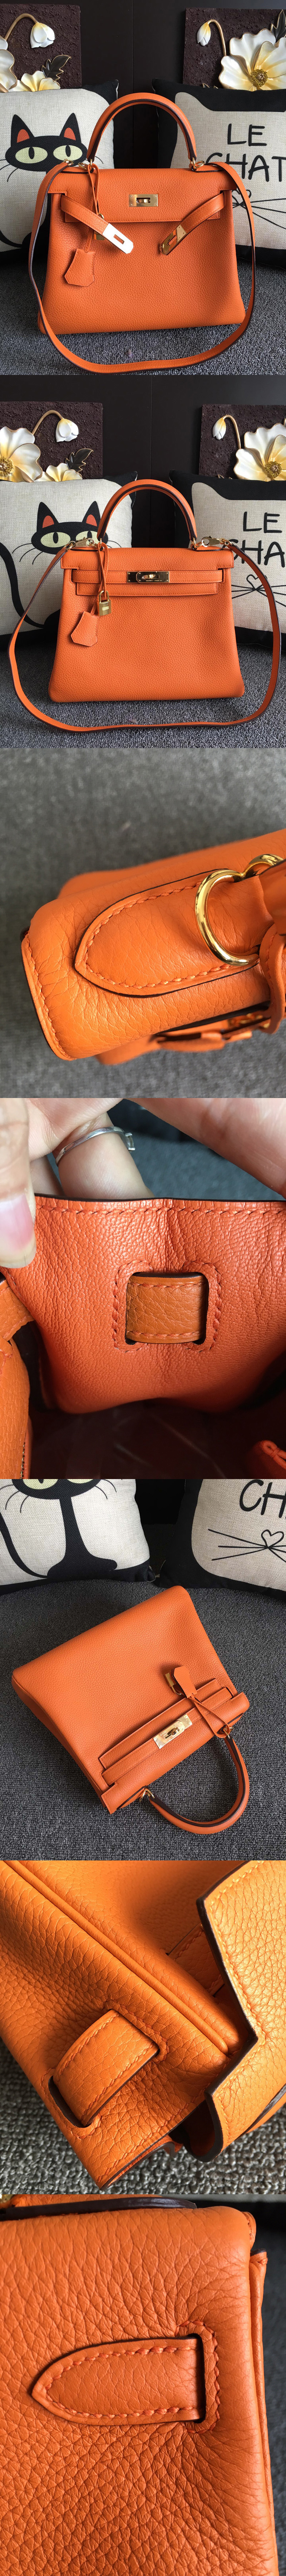 Replica Hermes Kelly 28cm Bag Full Handmade in Original Orange Togo Leather With Gold Buckle